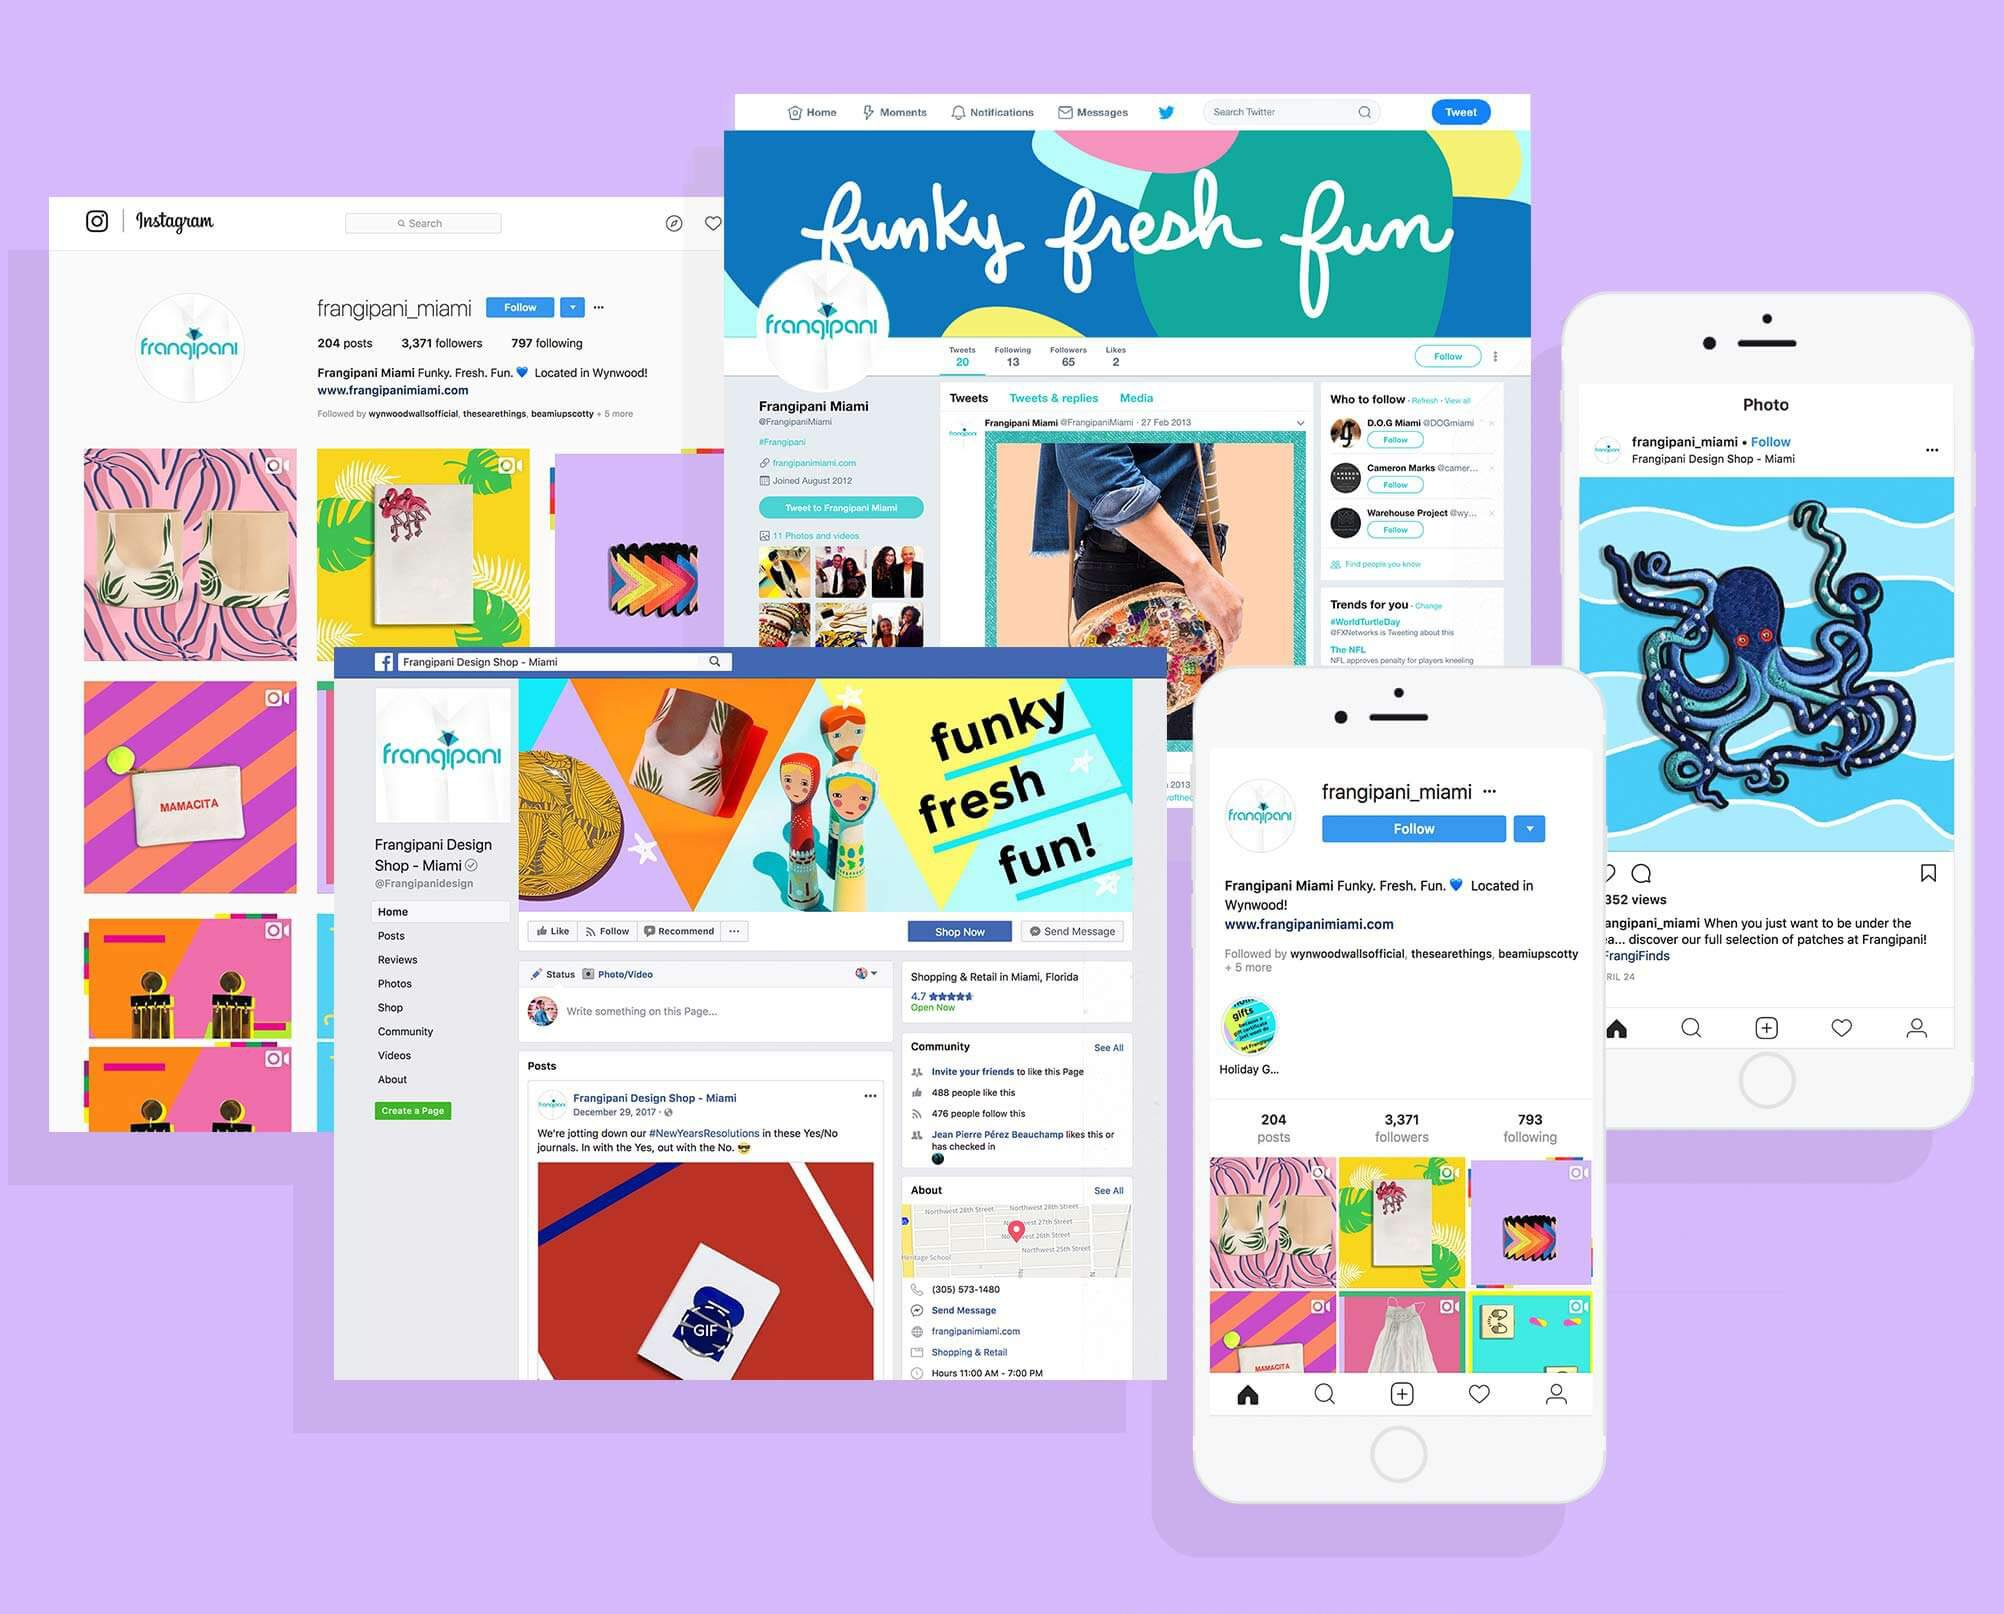 Frangipani social media content creation by Jacober Creative